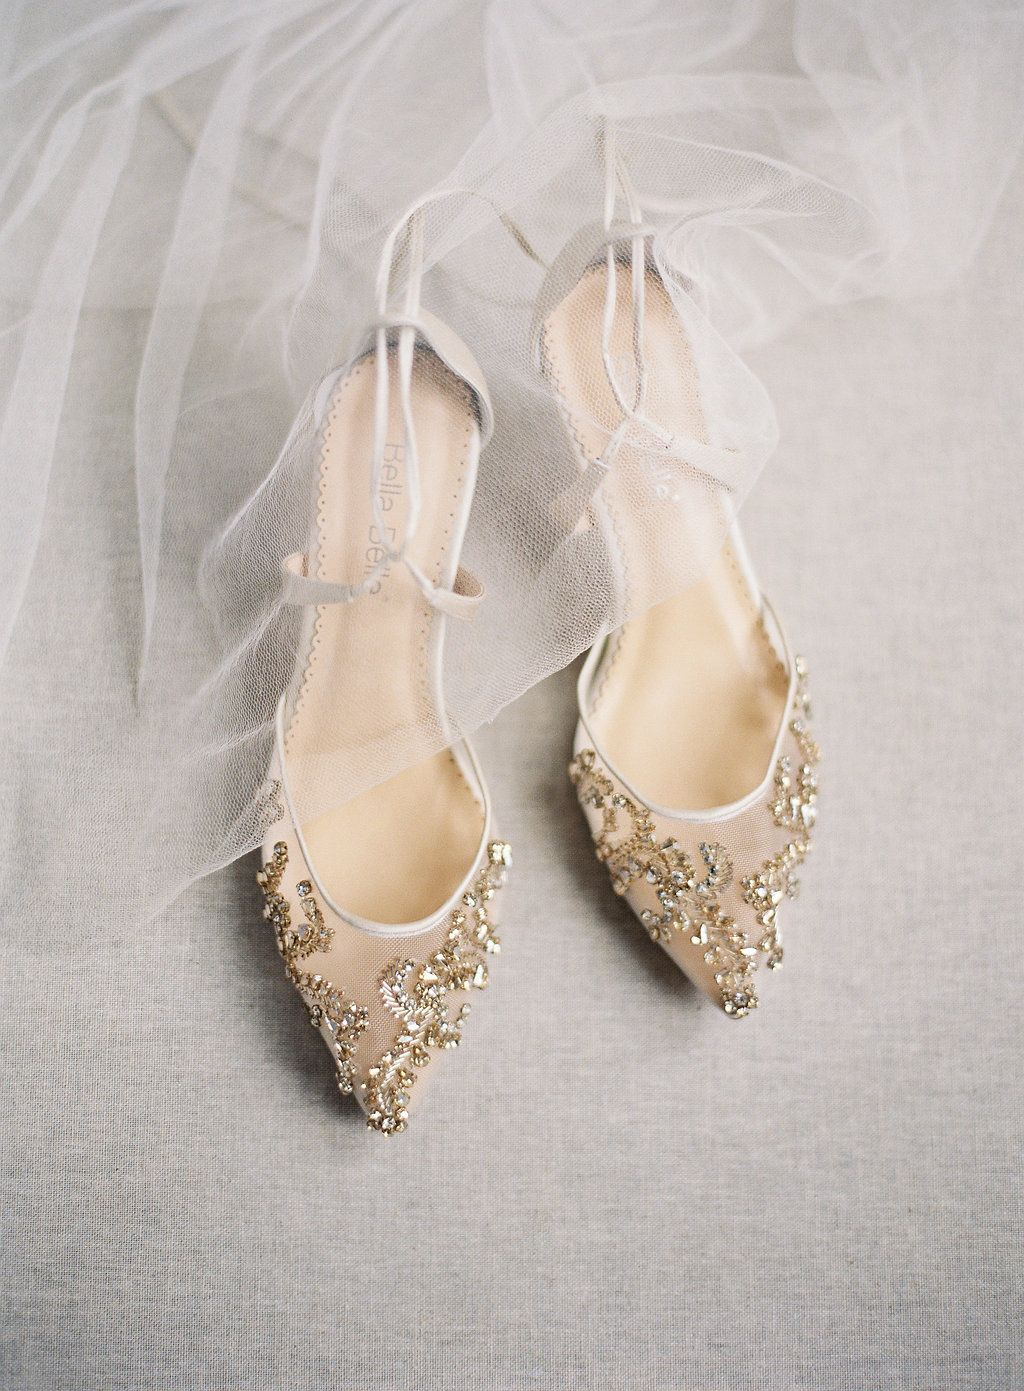 211f9101a898 ... low heel gold crystal embellished sparkly kitten heel wedding shoe  captured beautifully by Laura Gordon. Ballerina inspired ankle strap to  elongate your ...